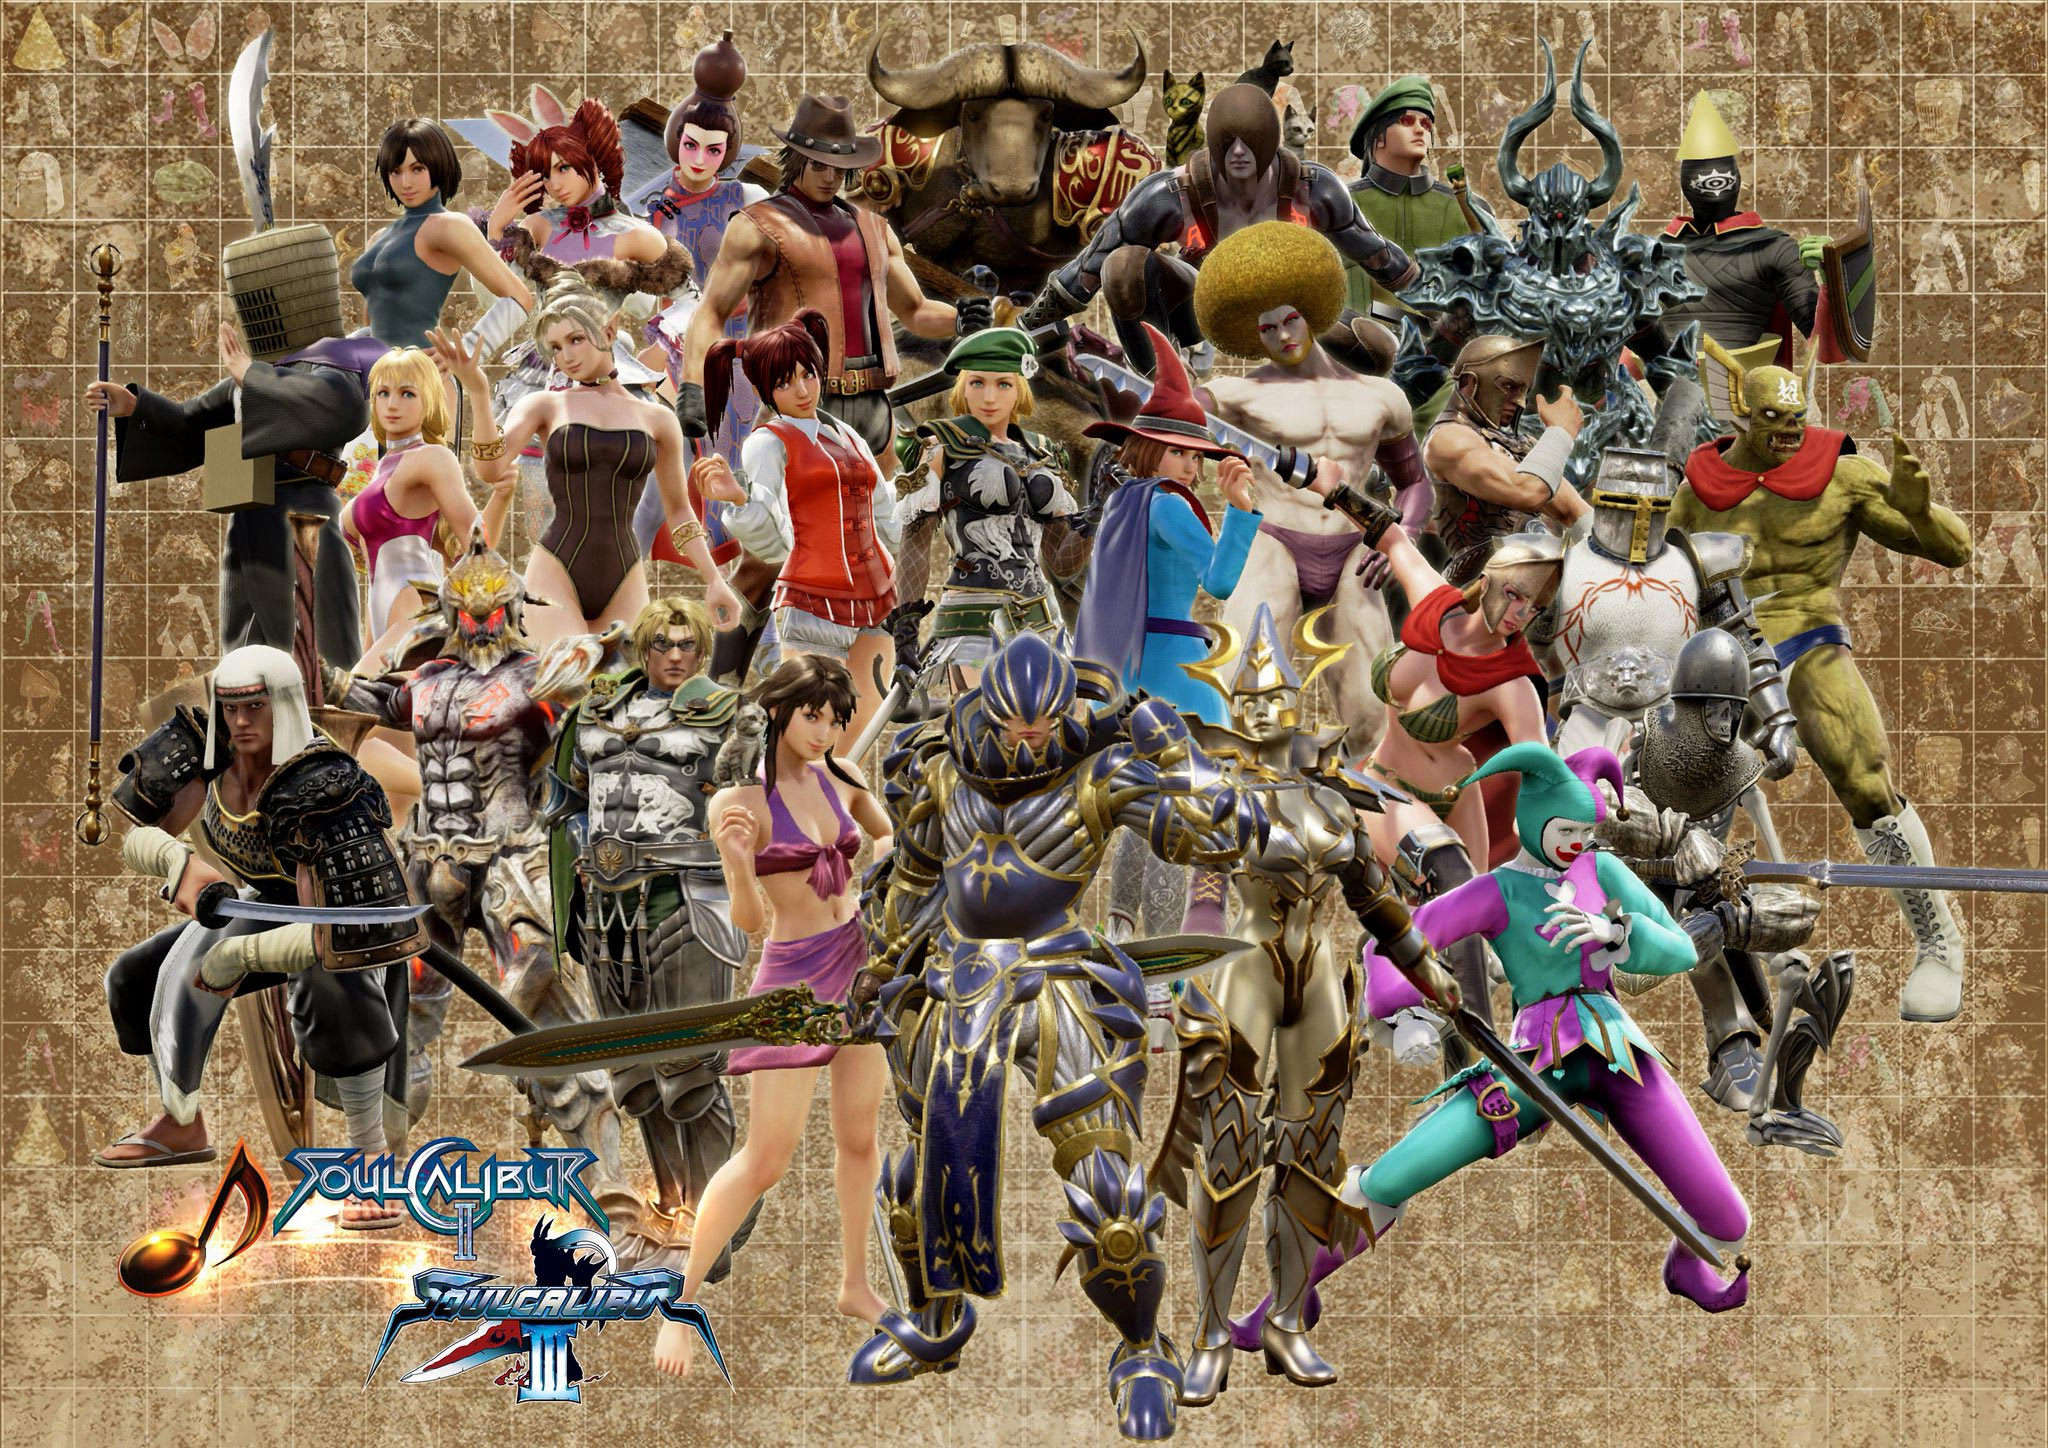 Soul Calibur new costume parts 3 out of 7 image gallery